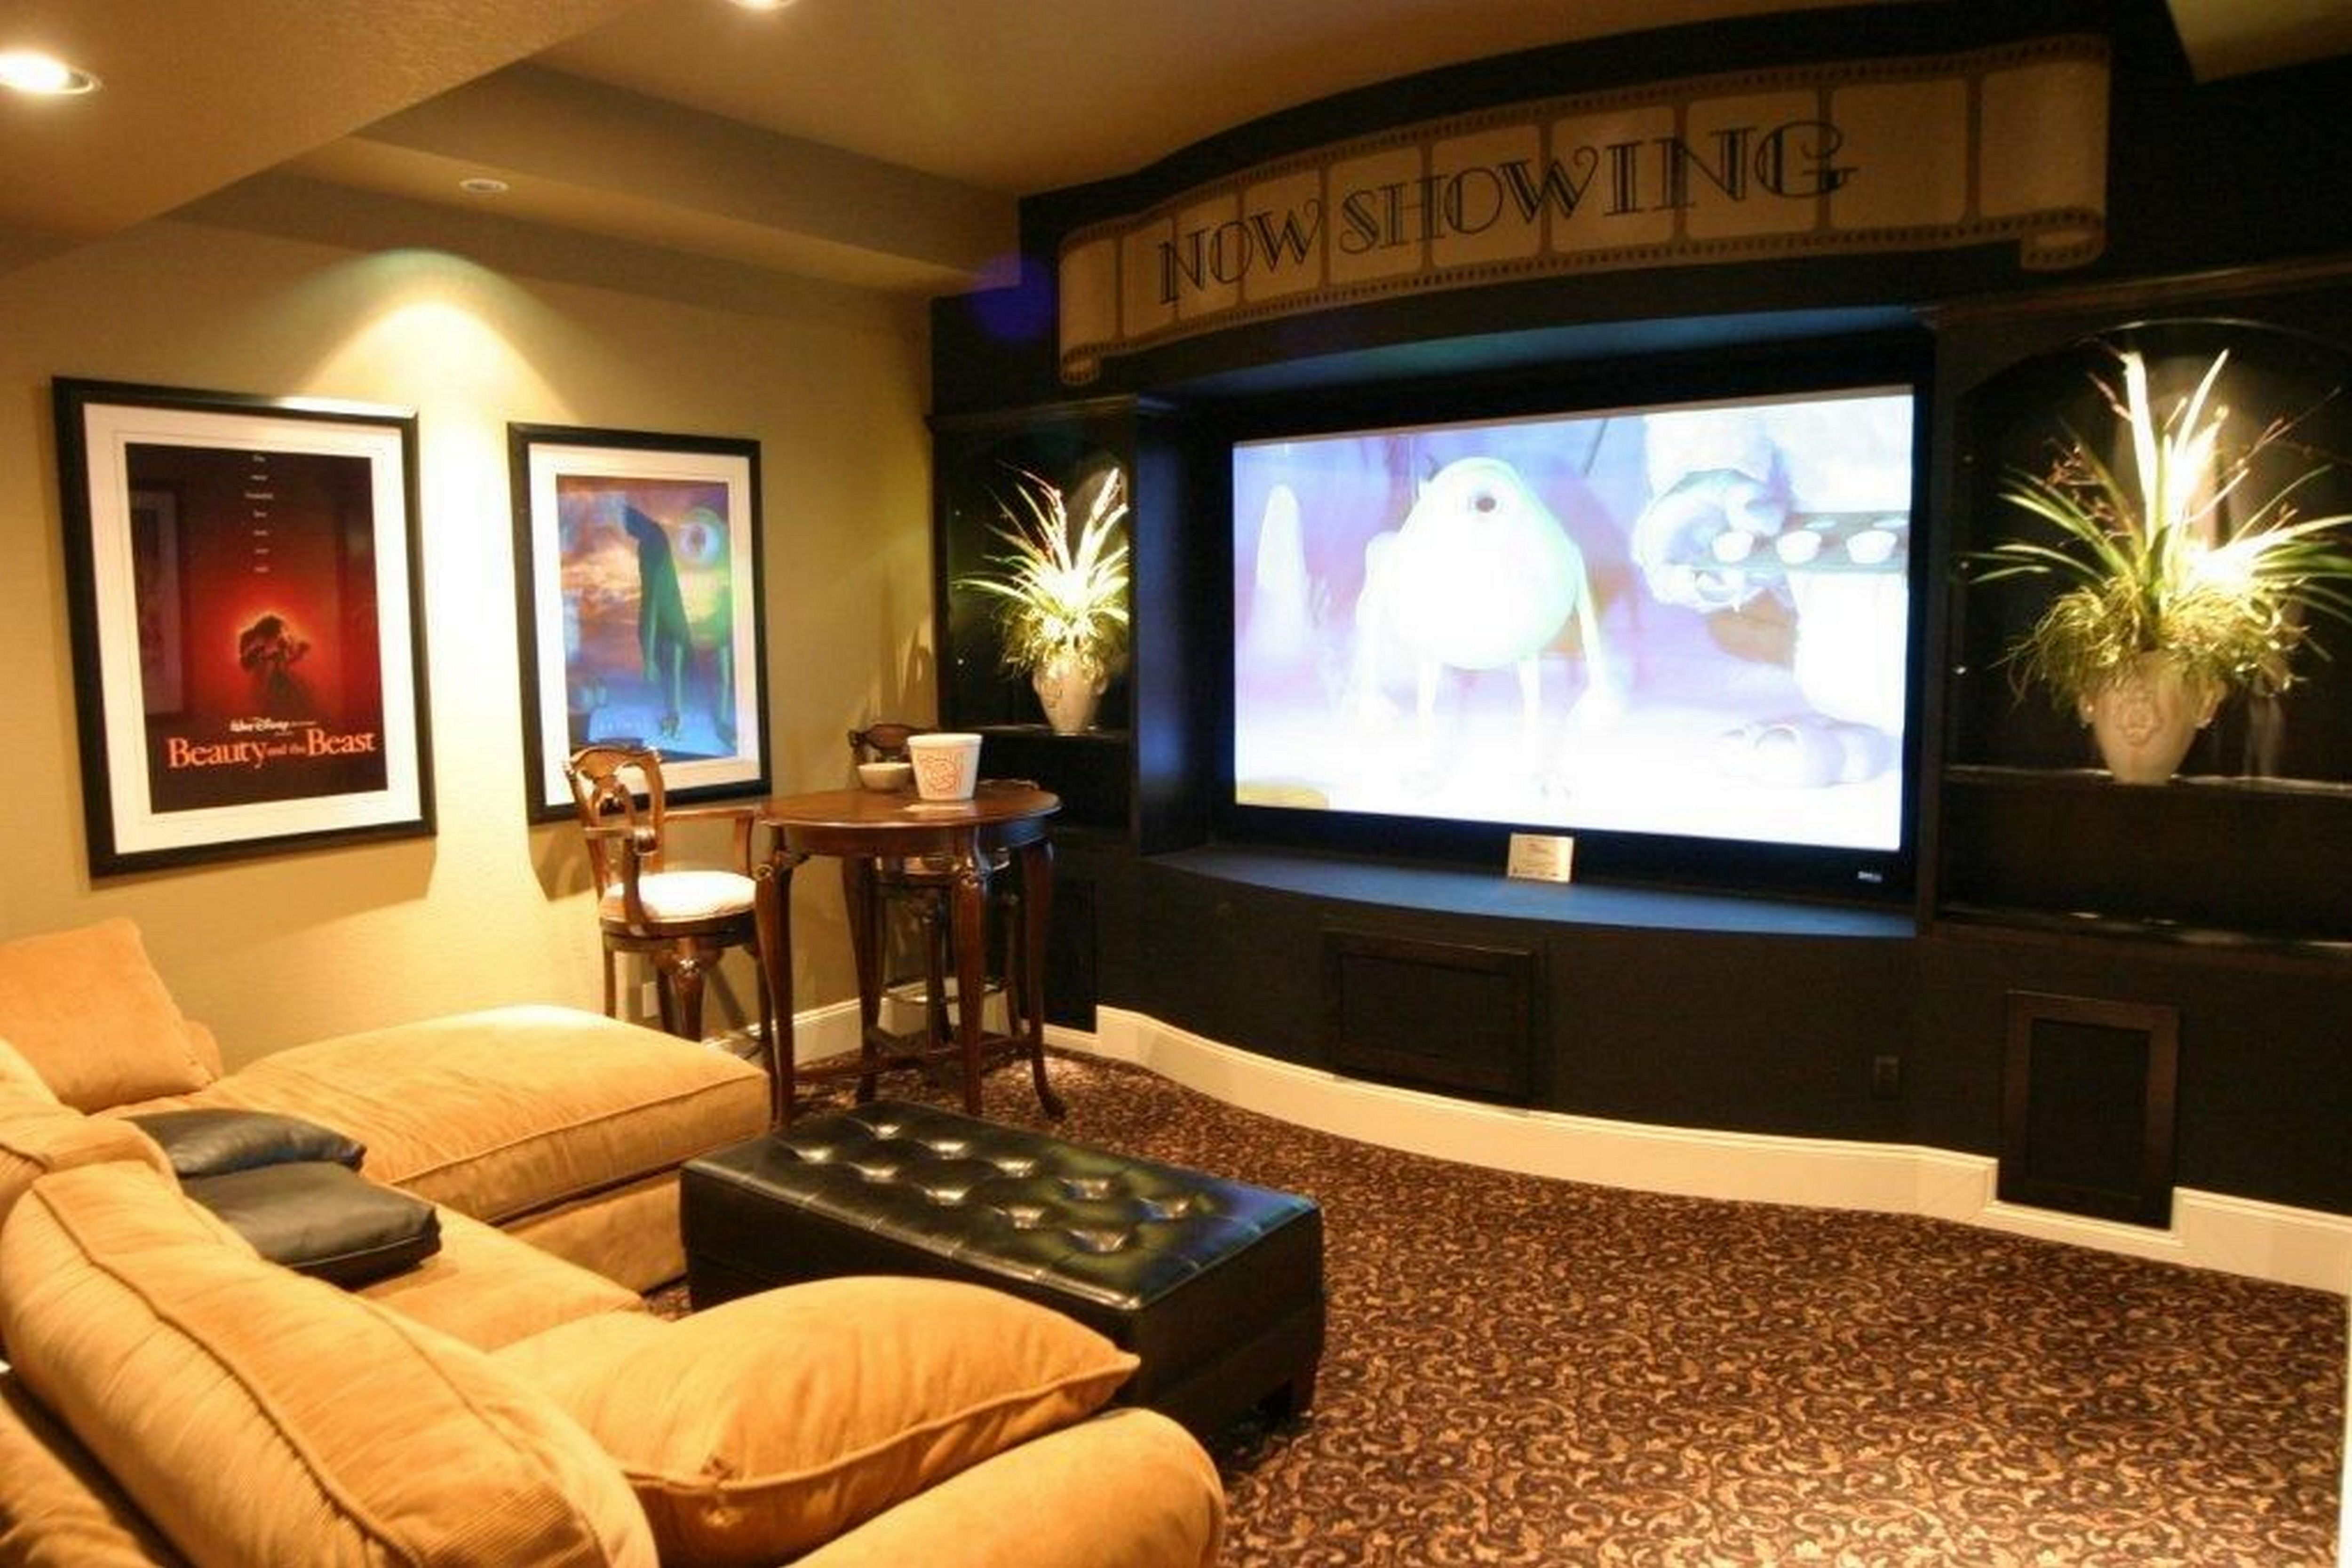 Outstanding 50 Cozy Small Movie Room Design Ideas For Your Happiness Family Https Decoor Net 50 Co Small Movie Room Home Theater Design Home Theater Seating